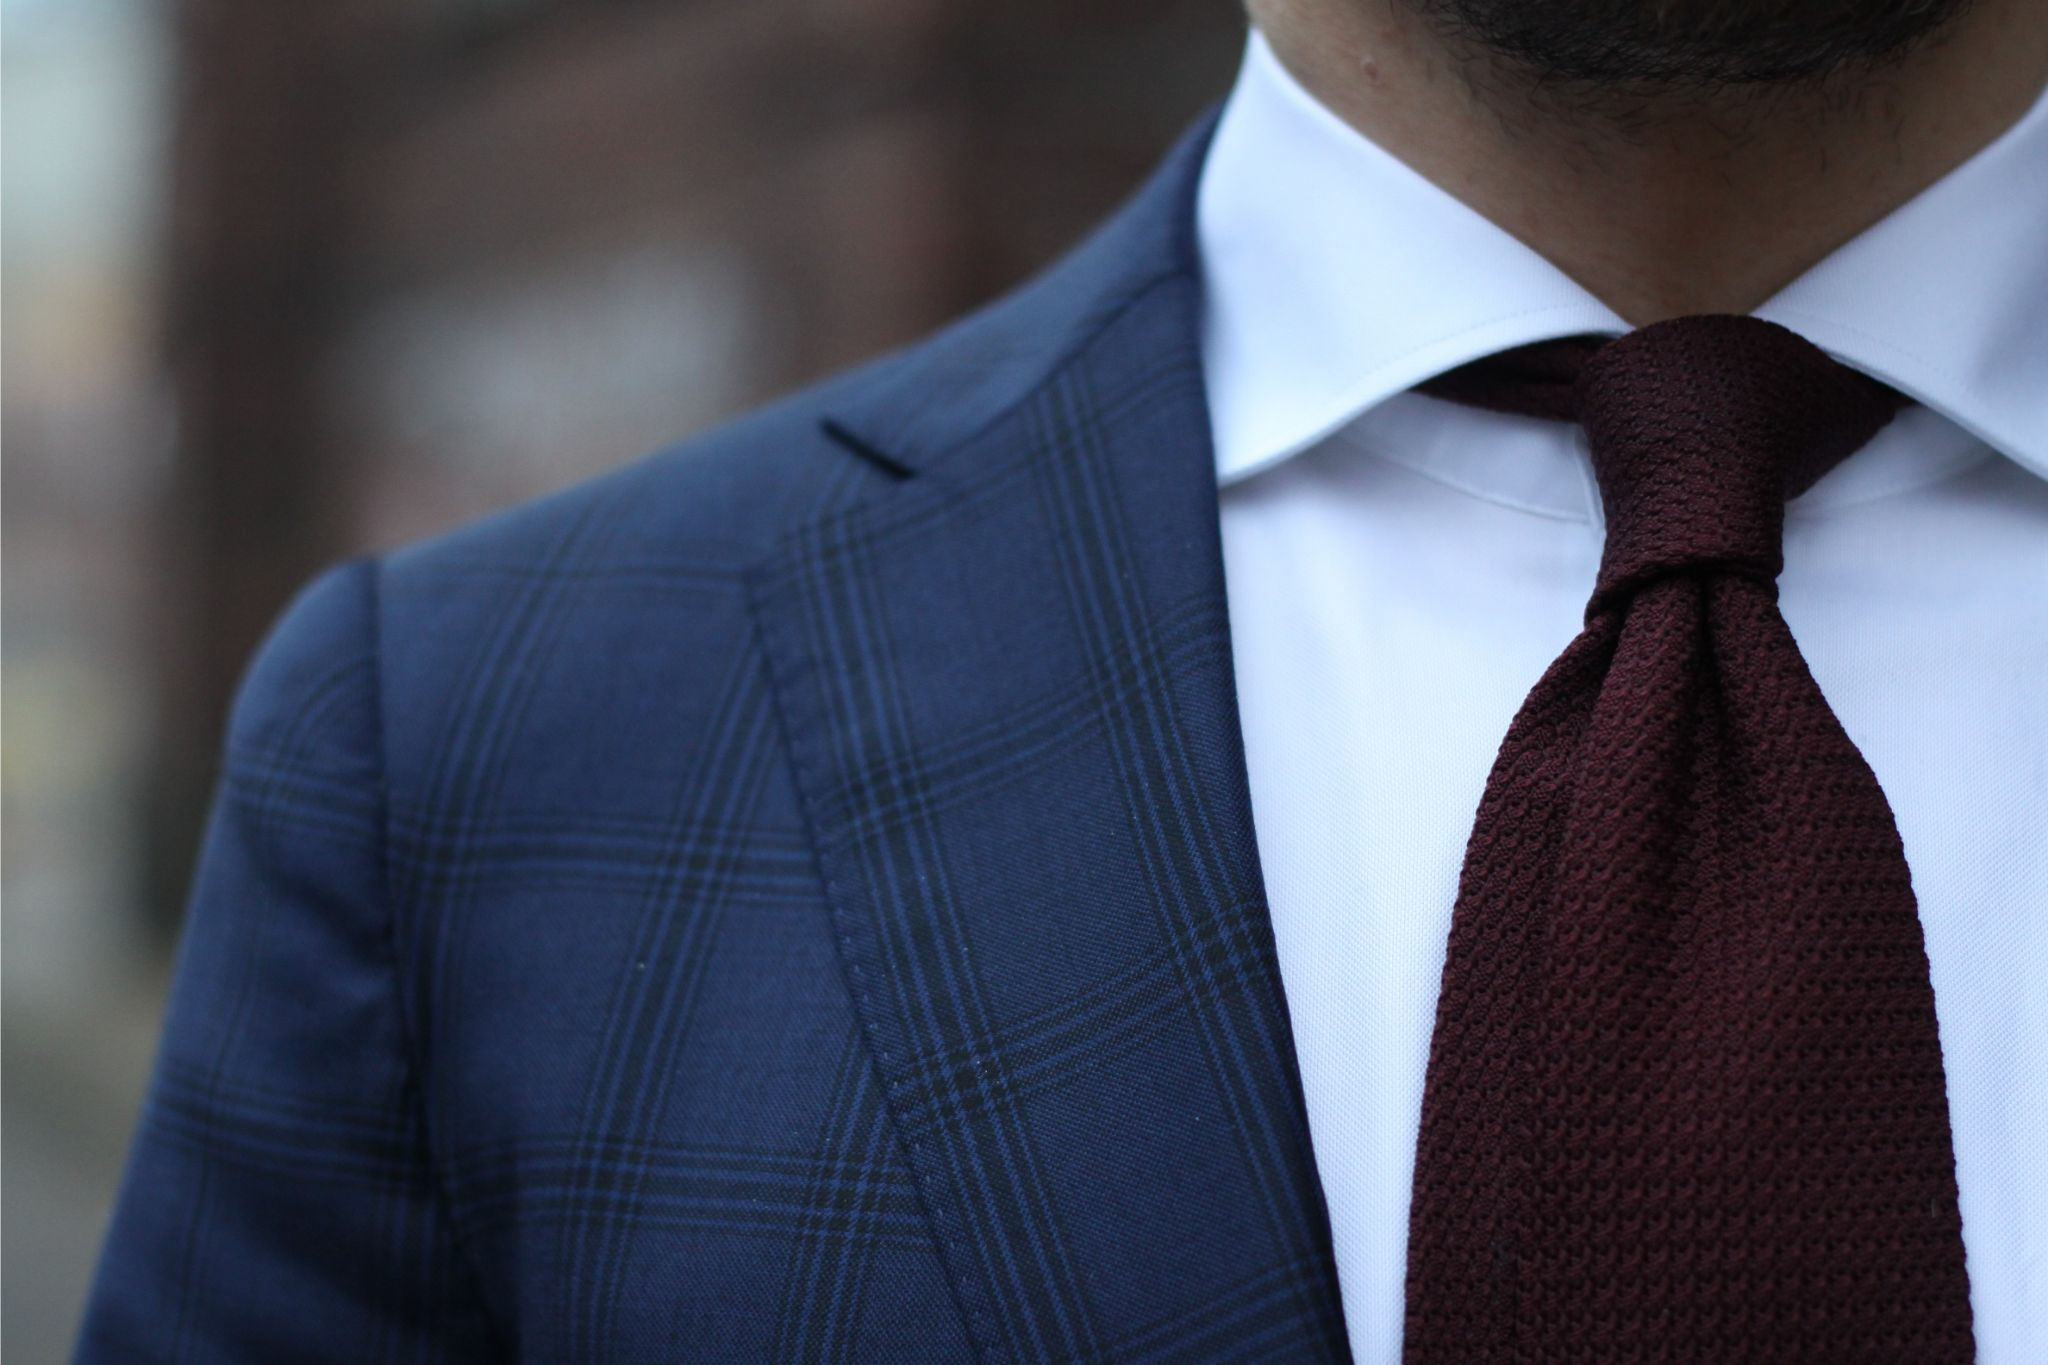 Burgundy grenadine tie with double four-in-hand knot